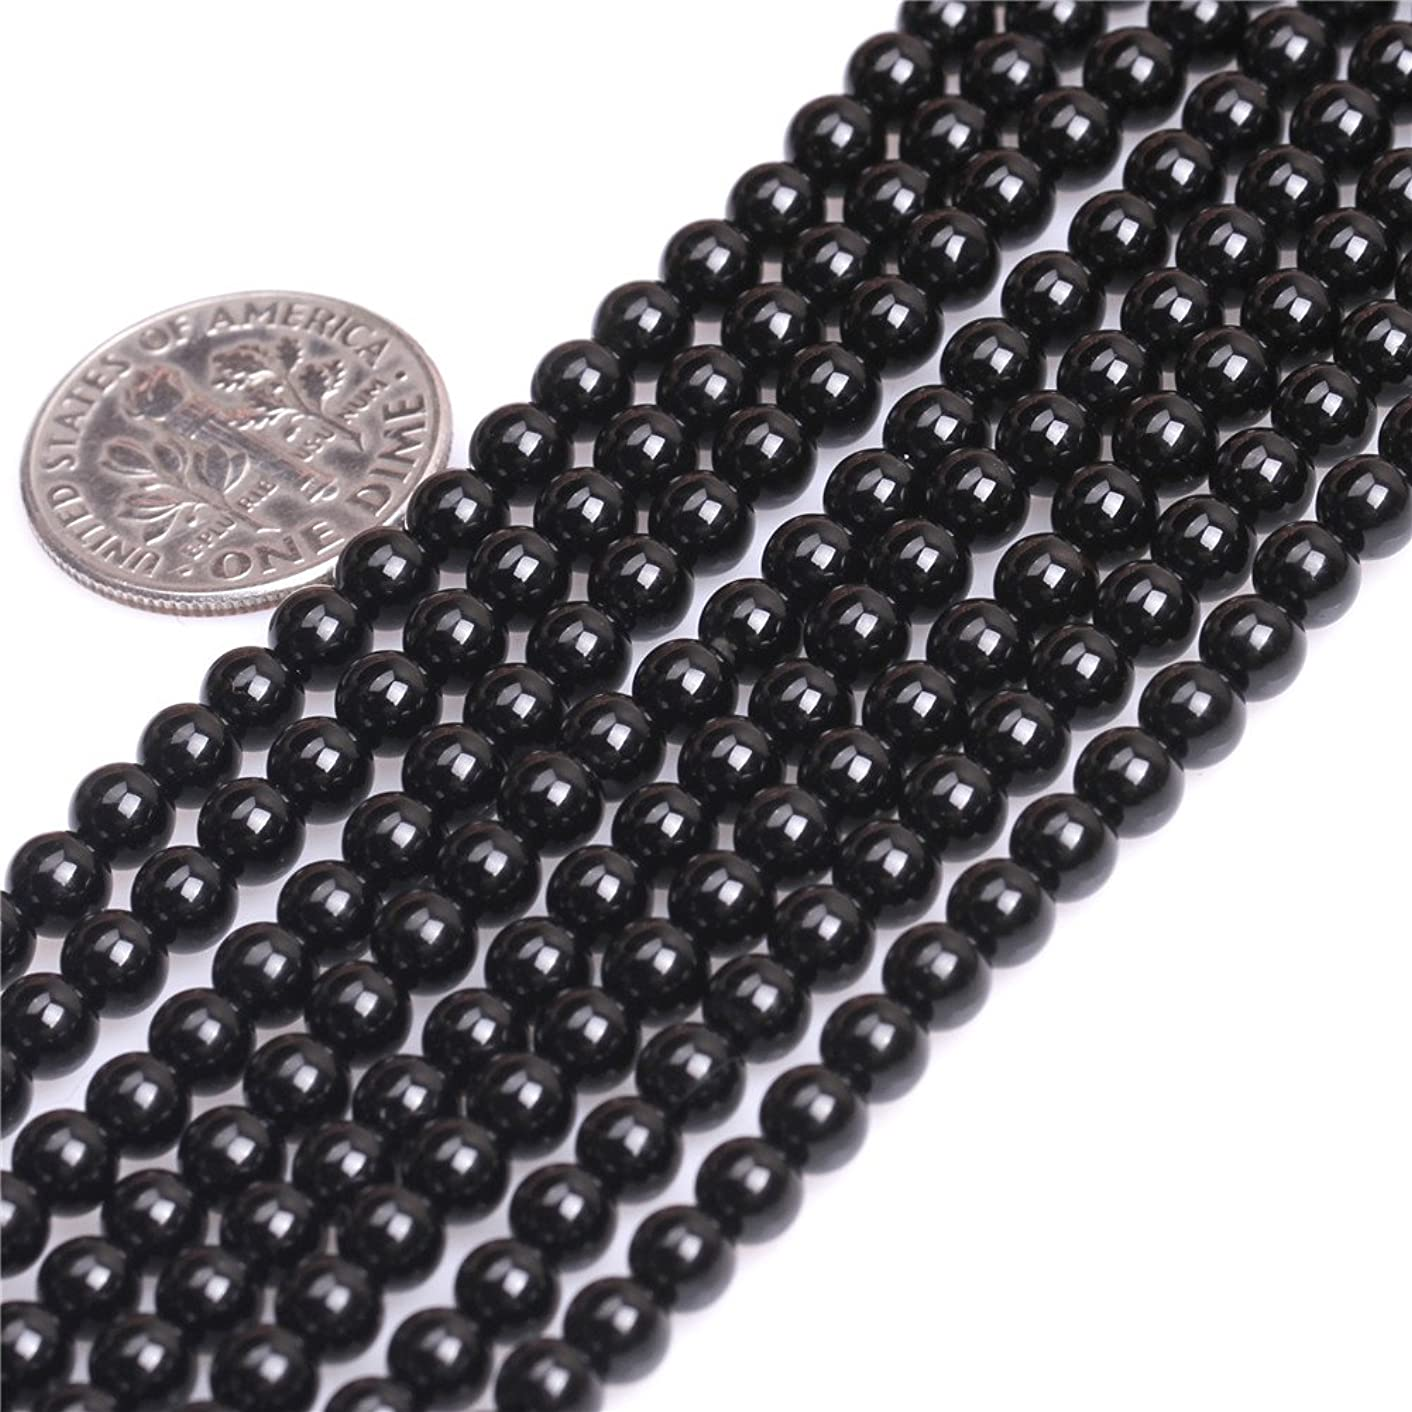 Black Agate Beads for Jewelry Making Natural Gemstone Semi Precious 4mm Round 15